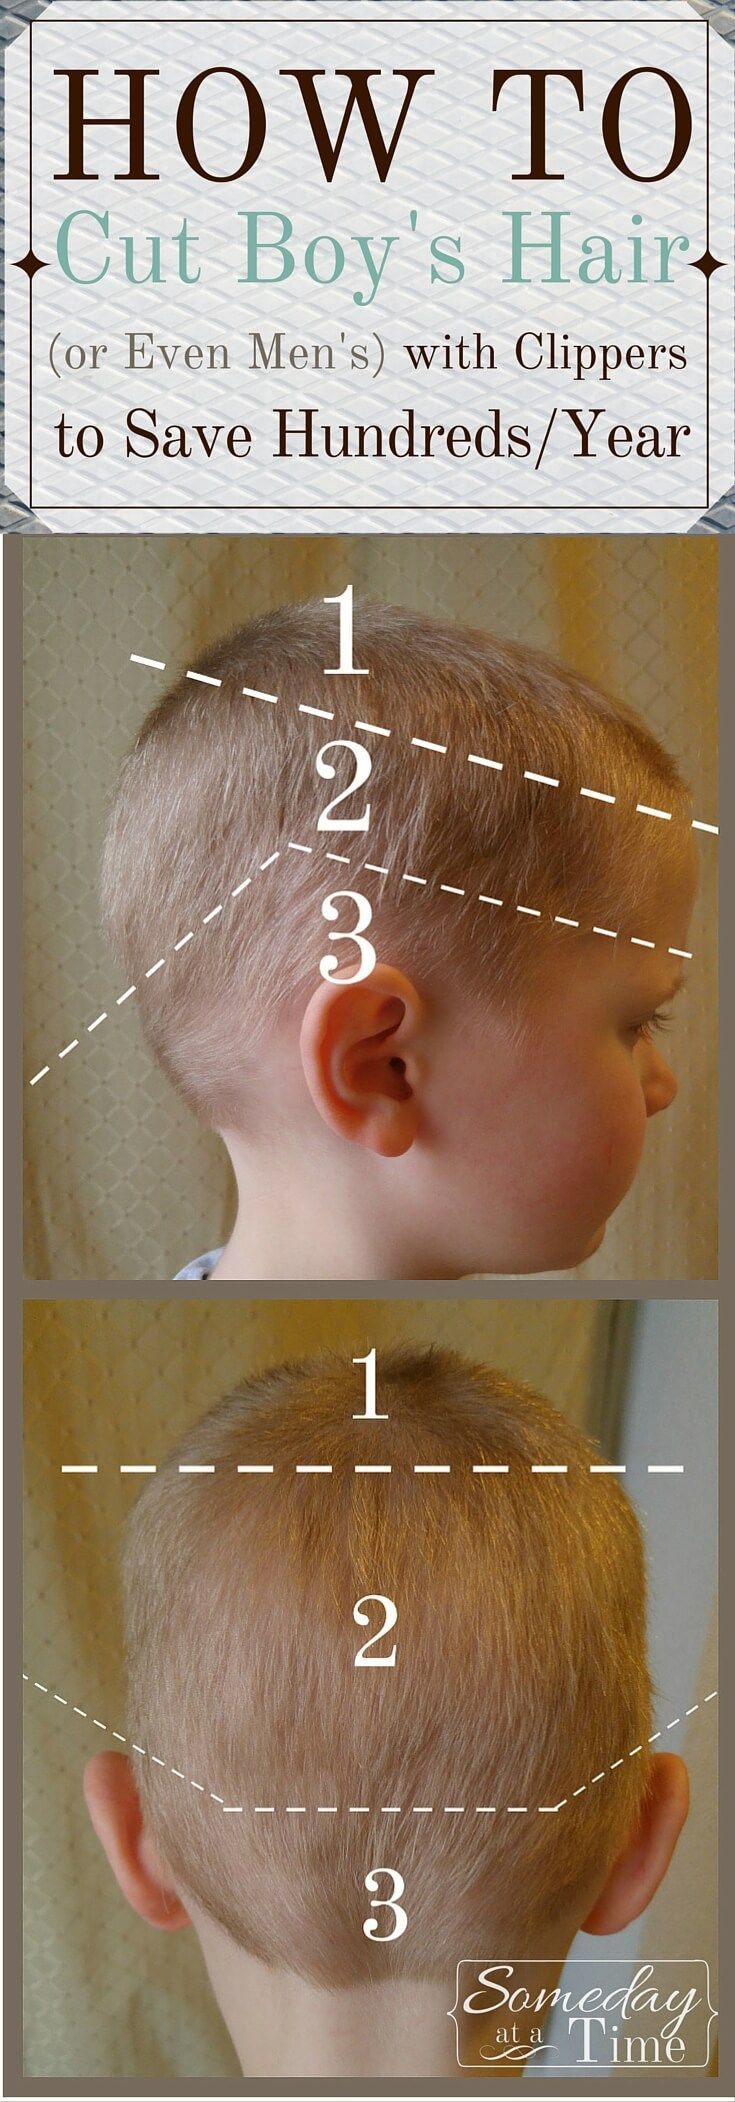 Boy hair style cutting how to cut boy s hair or even men s with clippers  haircuts boy